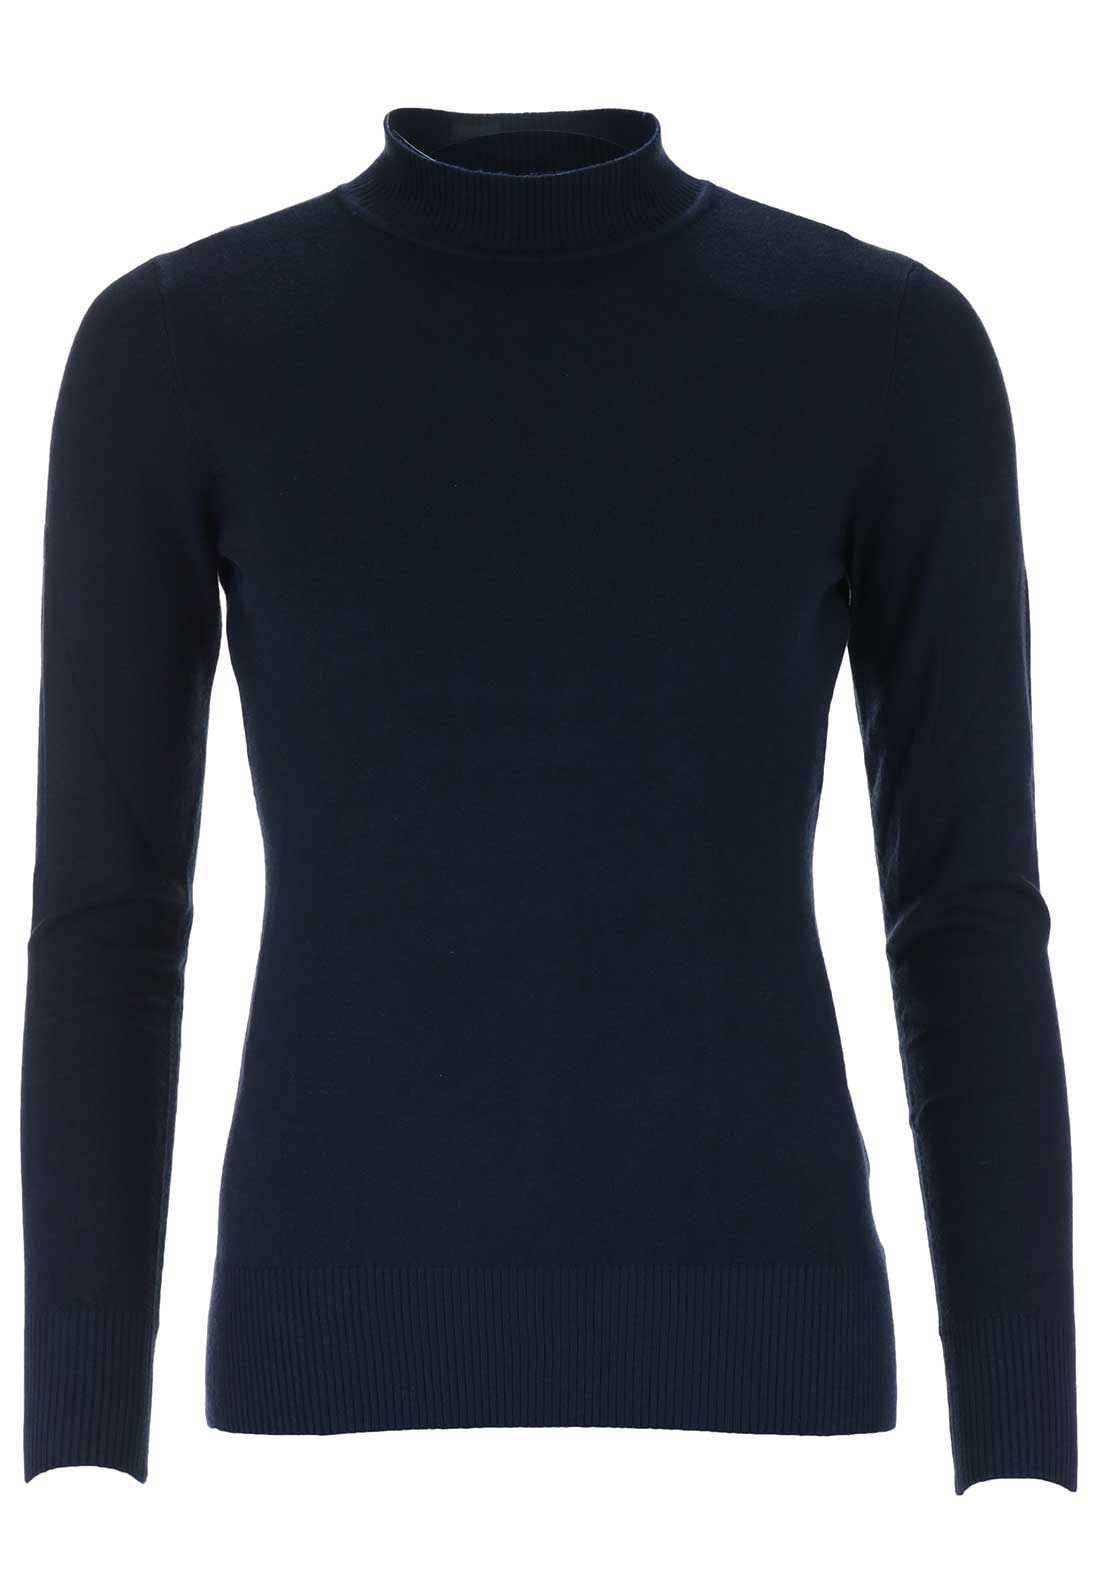 d.e.c.k. by Decollage High Neck Jumper, Navy